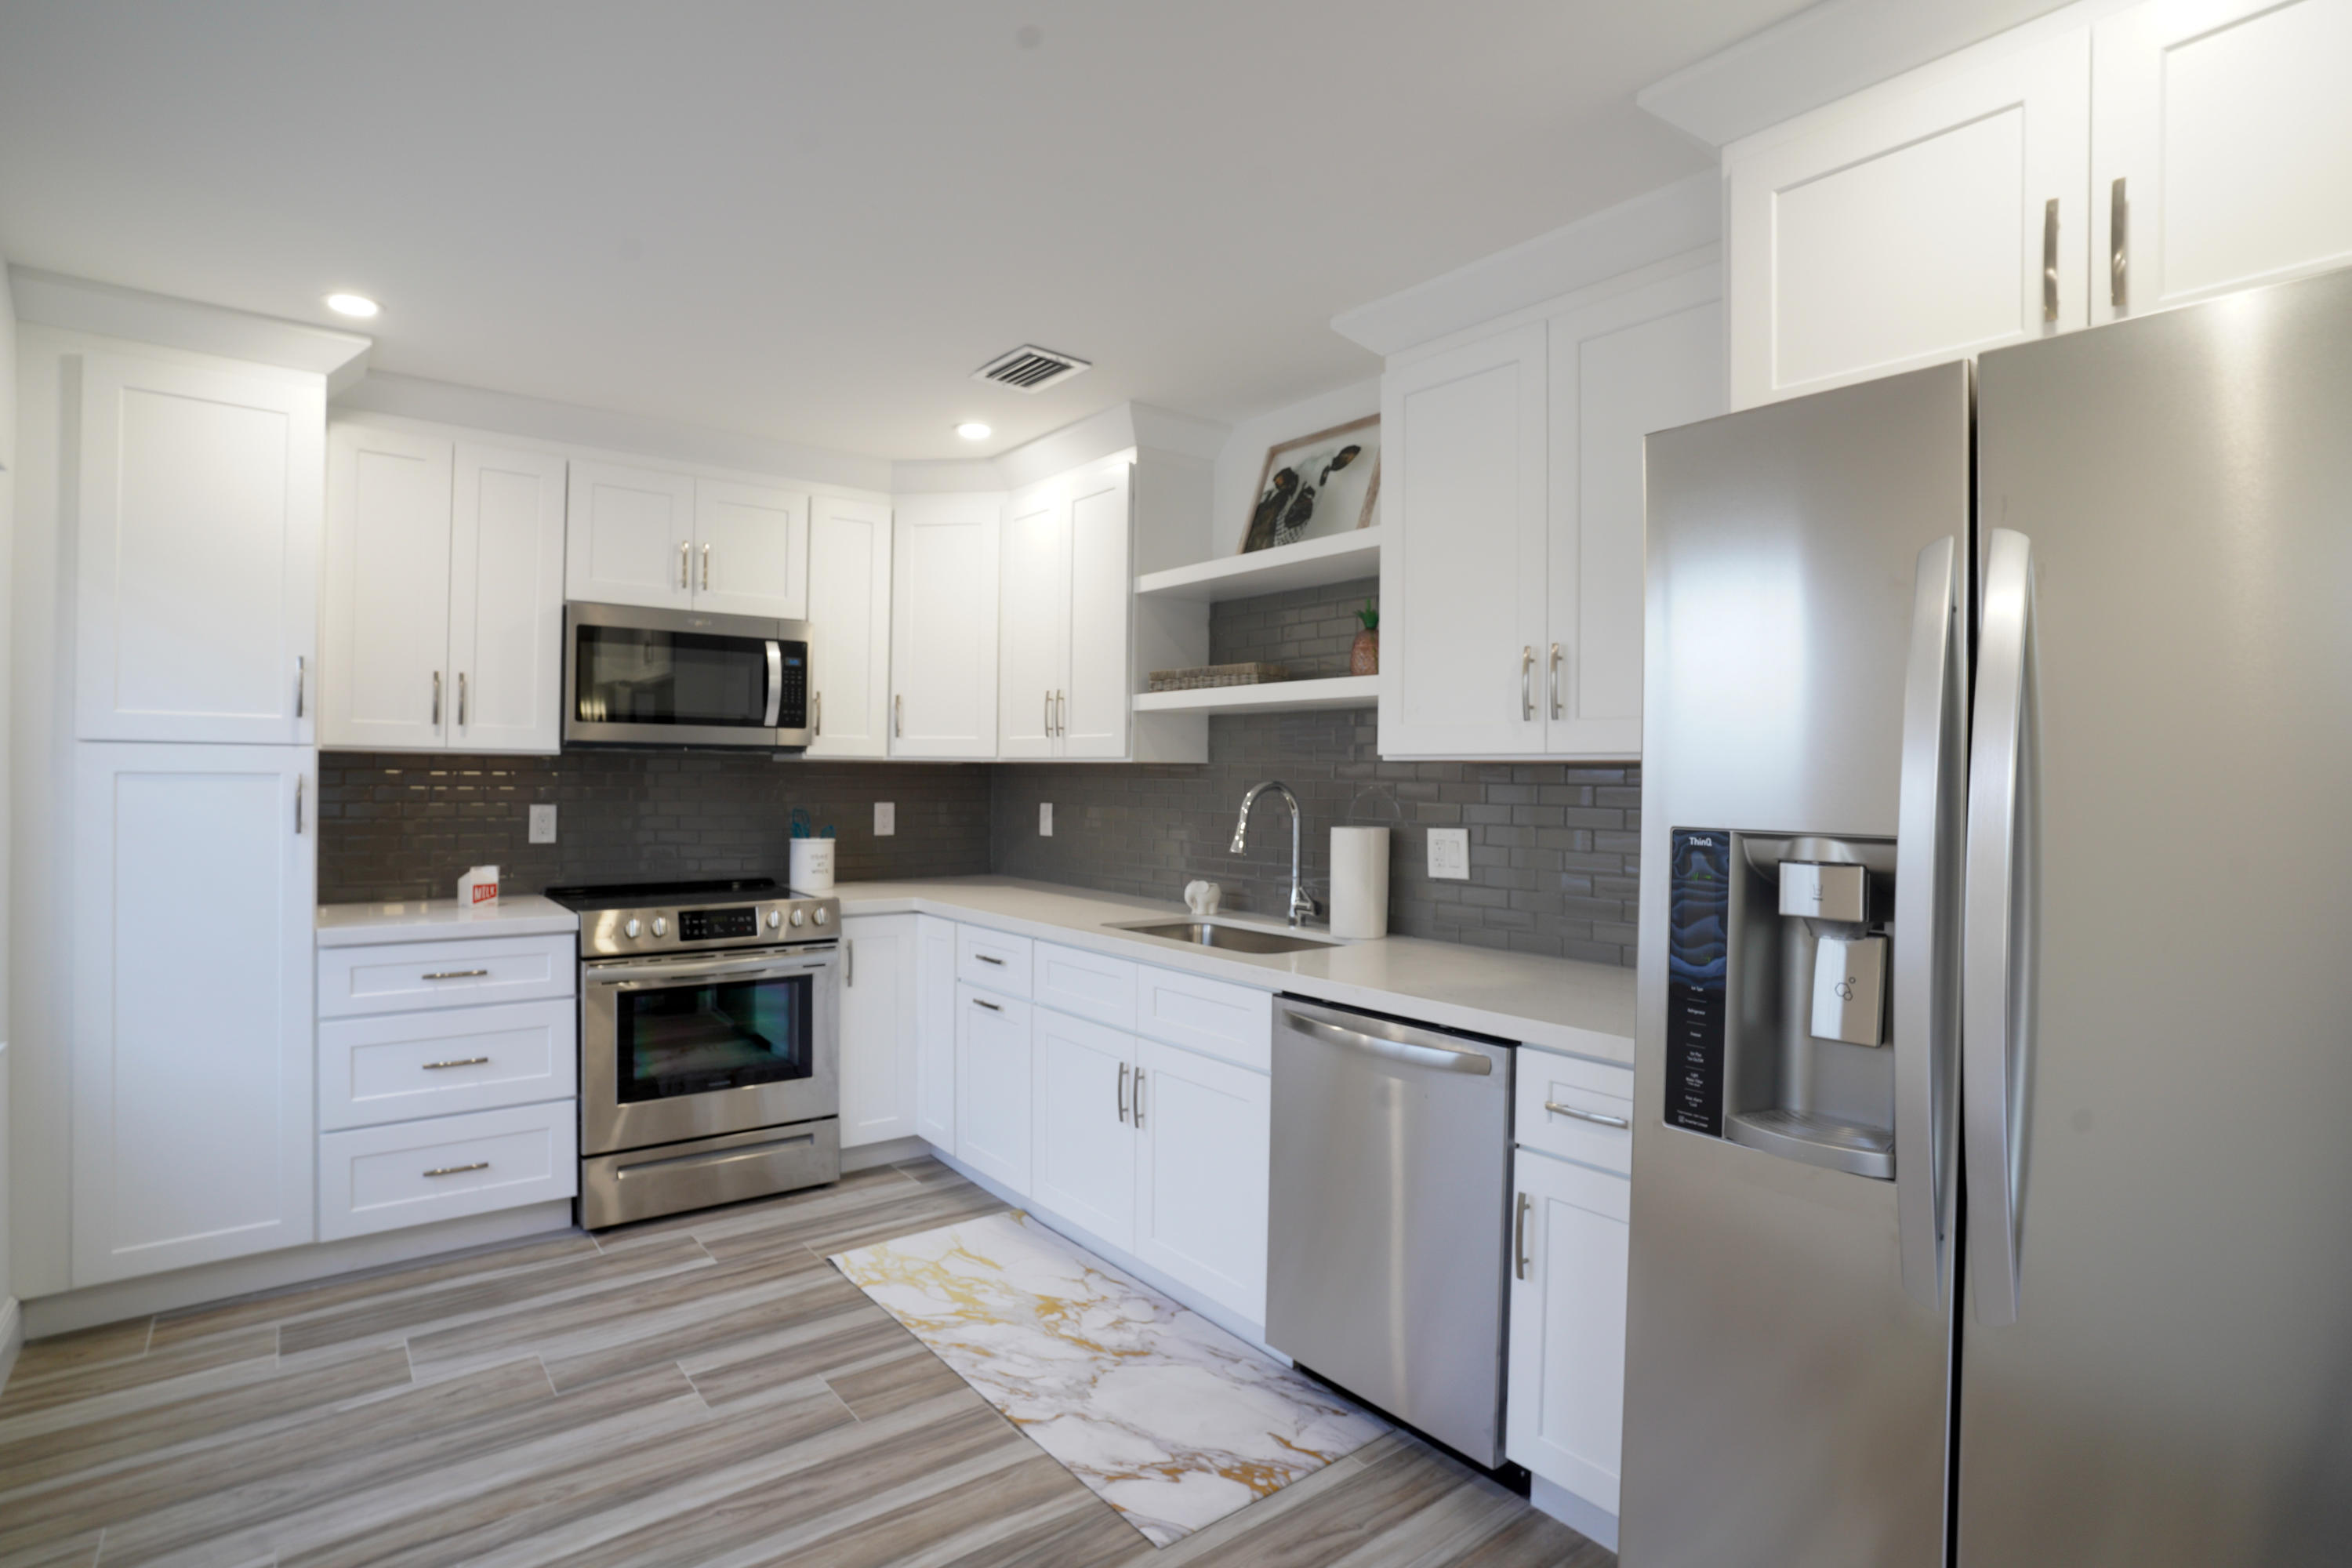 Beautiful home perfect for investor or owner.  Tile floors, wood shaker cabinets, quartz countertops, glass backsplash and much more.  ONLY AVAILABLE DURING TWO OPEN HOUSES SAT MAY 8 1230-4 AND SUNDAY MAY 9TH 10-1.  Make your best offer.  Can be rented right away going rate is approximately $2600.    NO FHA